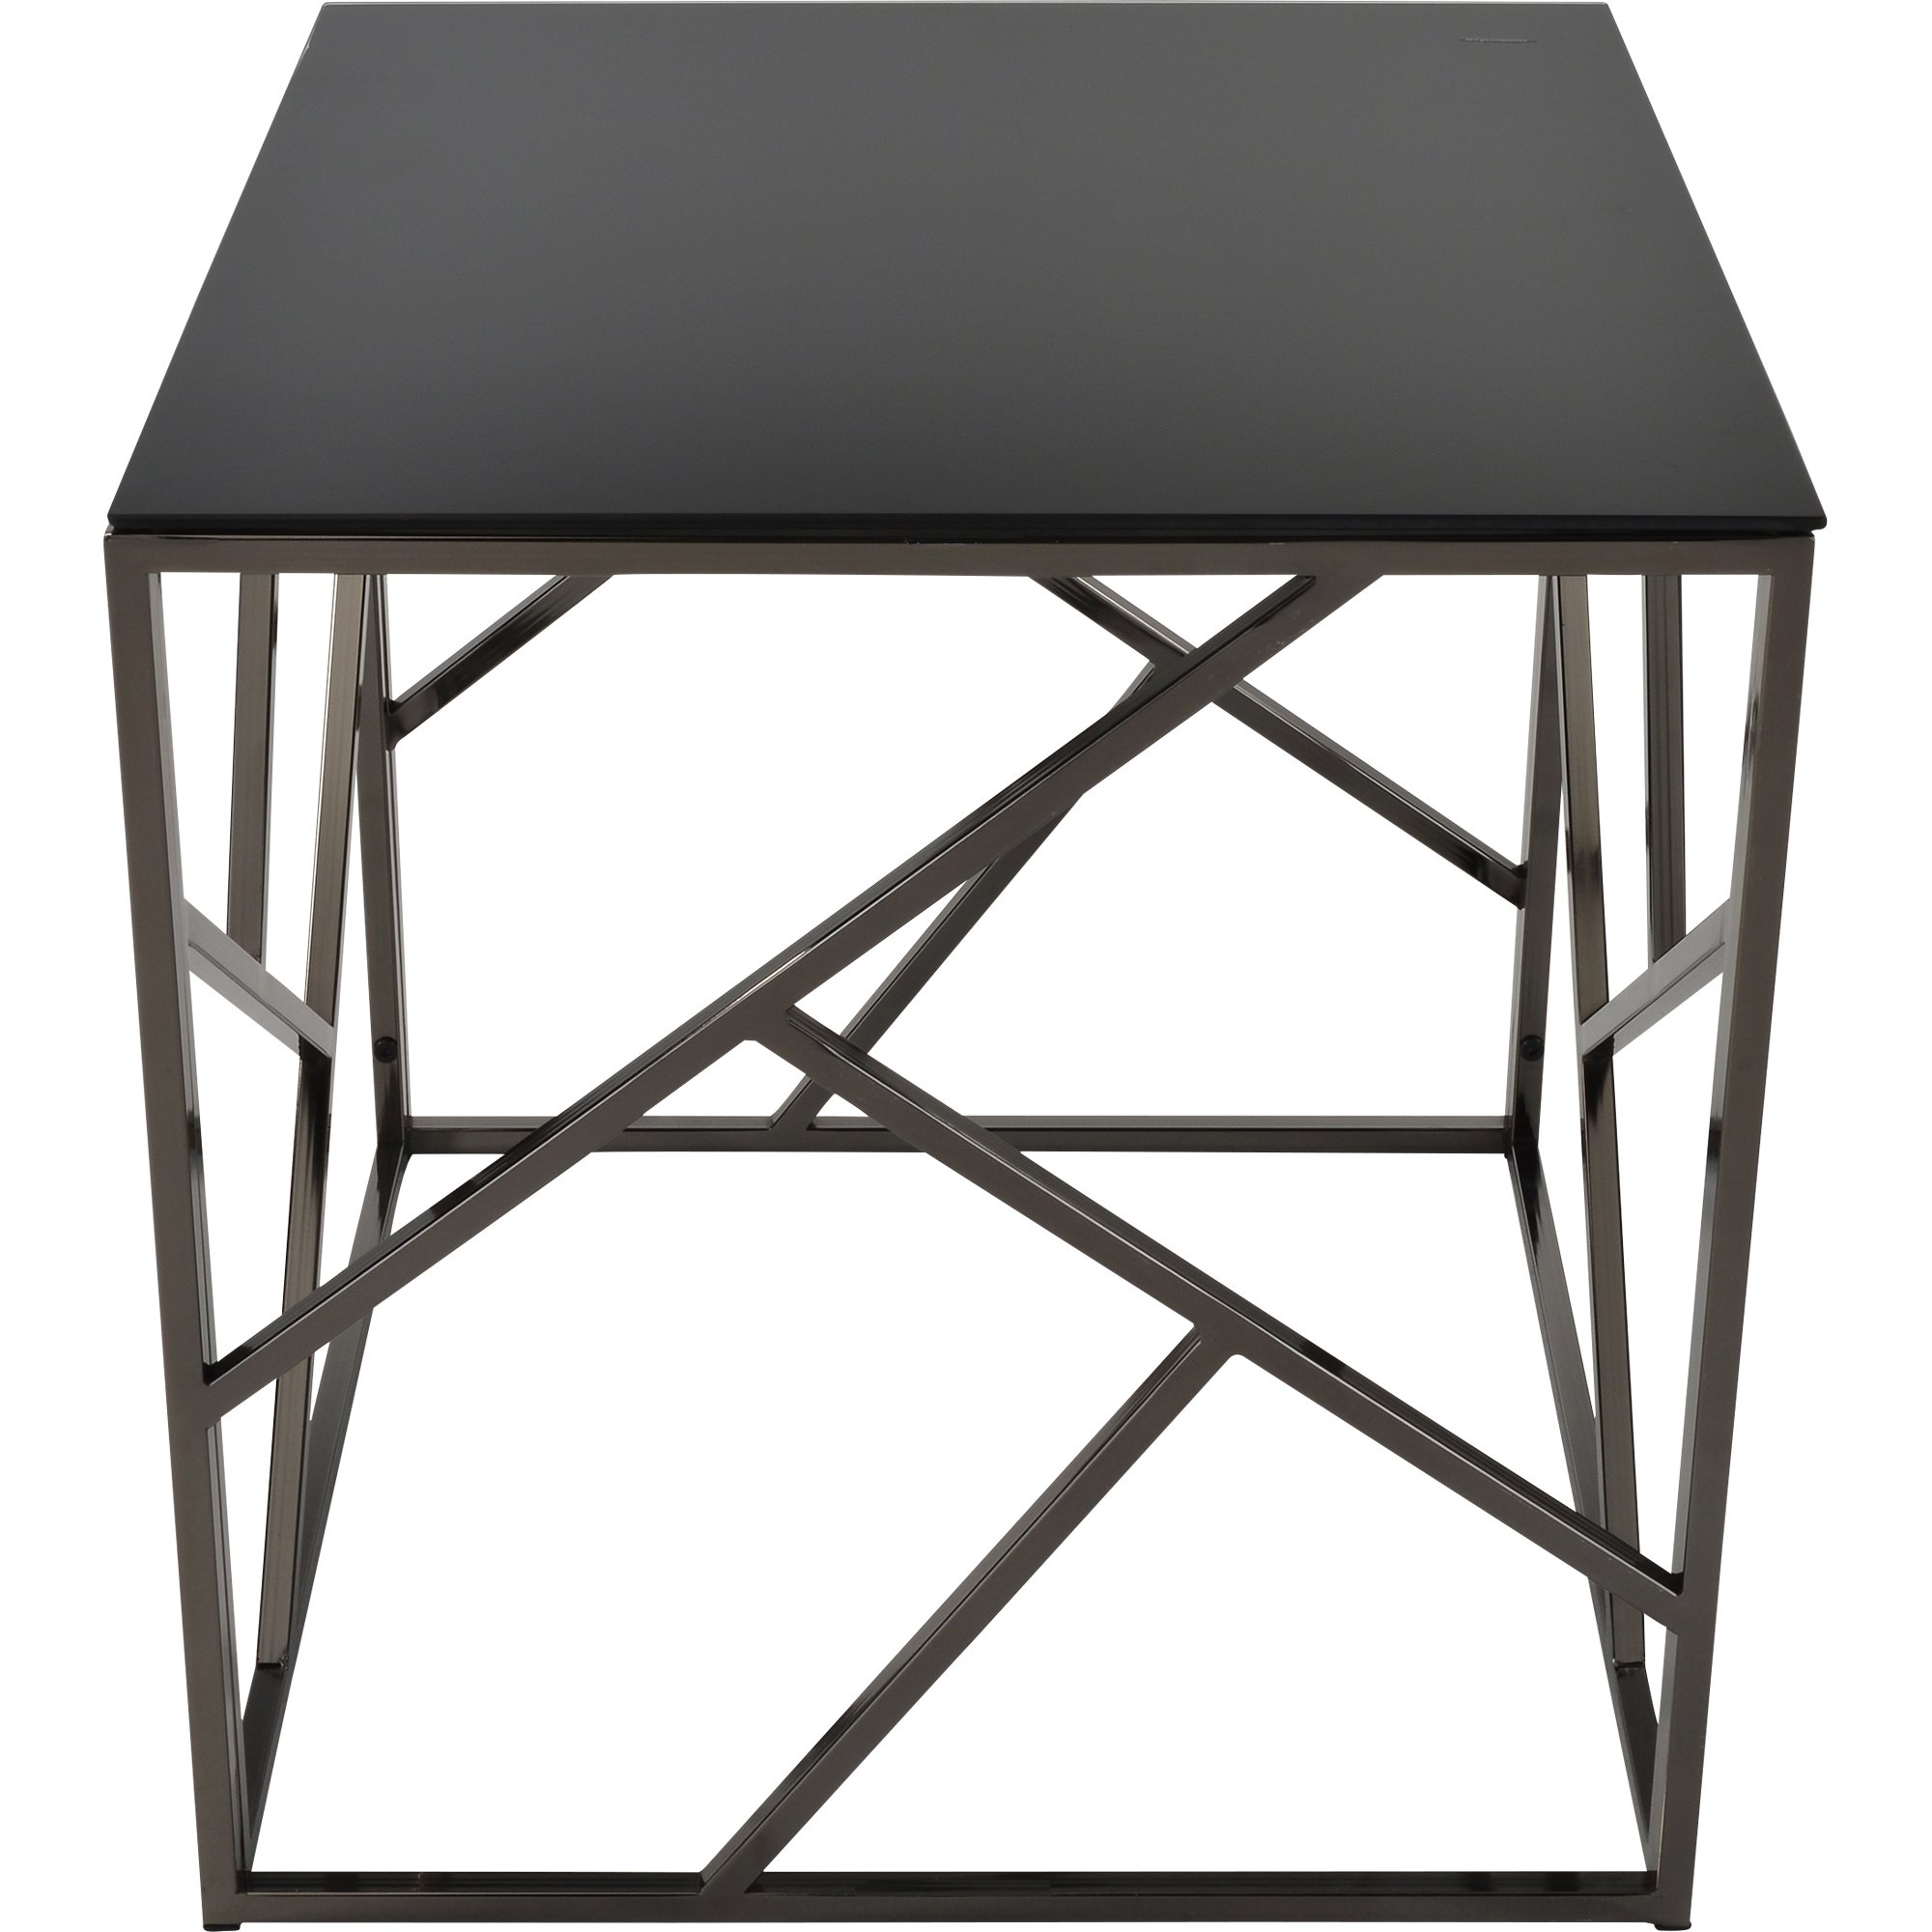 giada black glass and metal accent table free shipping today pottery barn white dishes bookends target hairpin leg side furniture danish mid century modern cherry folding coffee